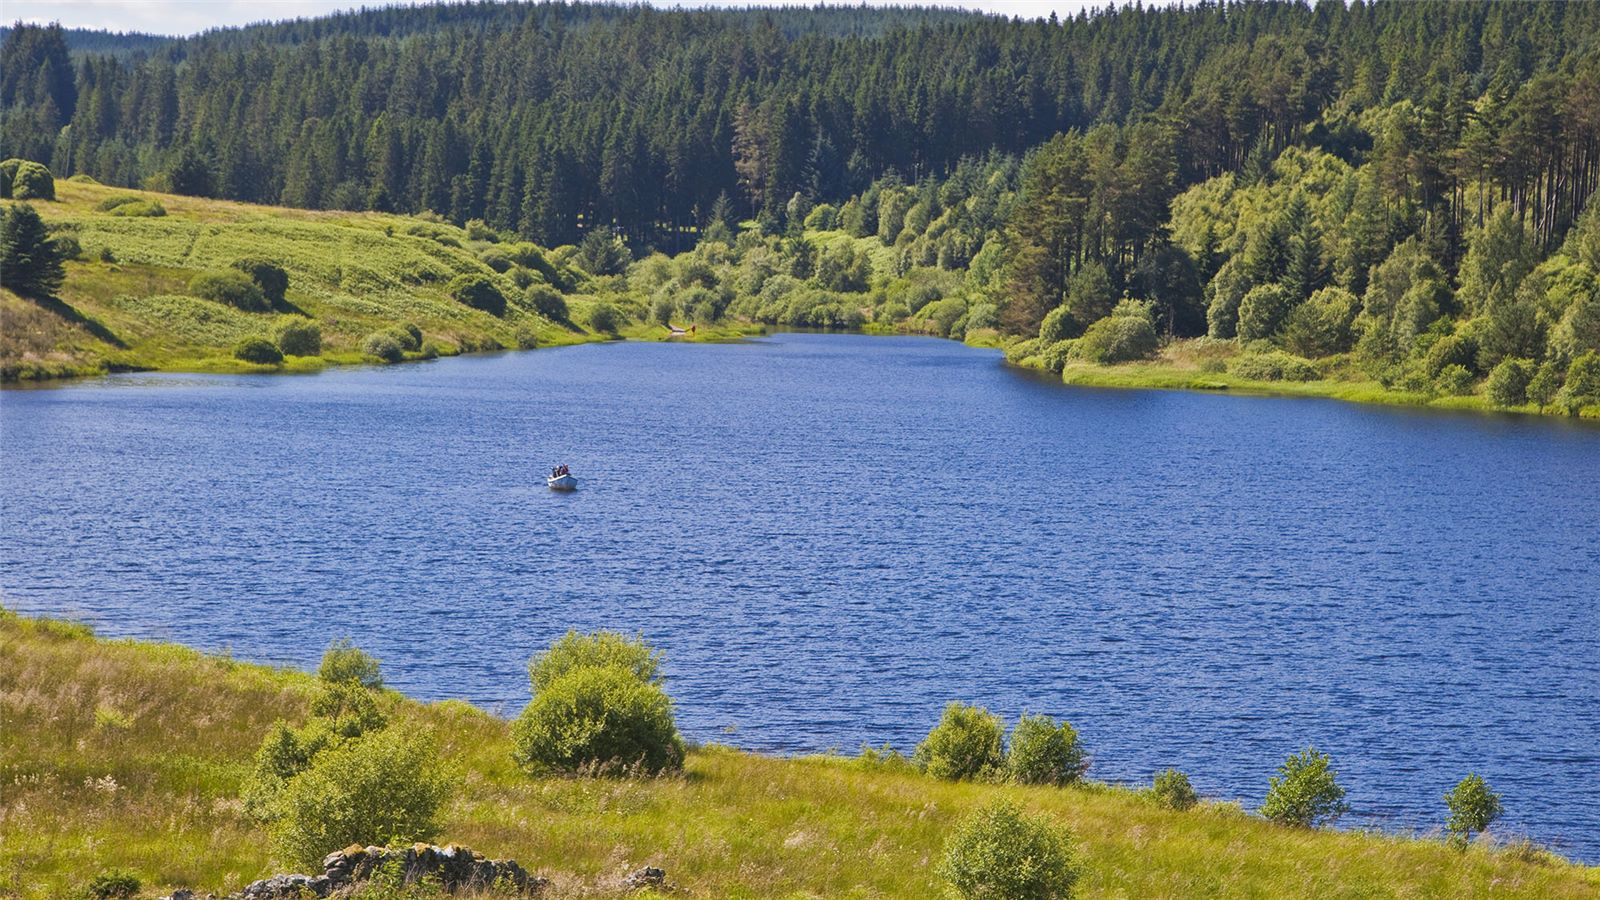 Kielder water resevoir in Northumberland